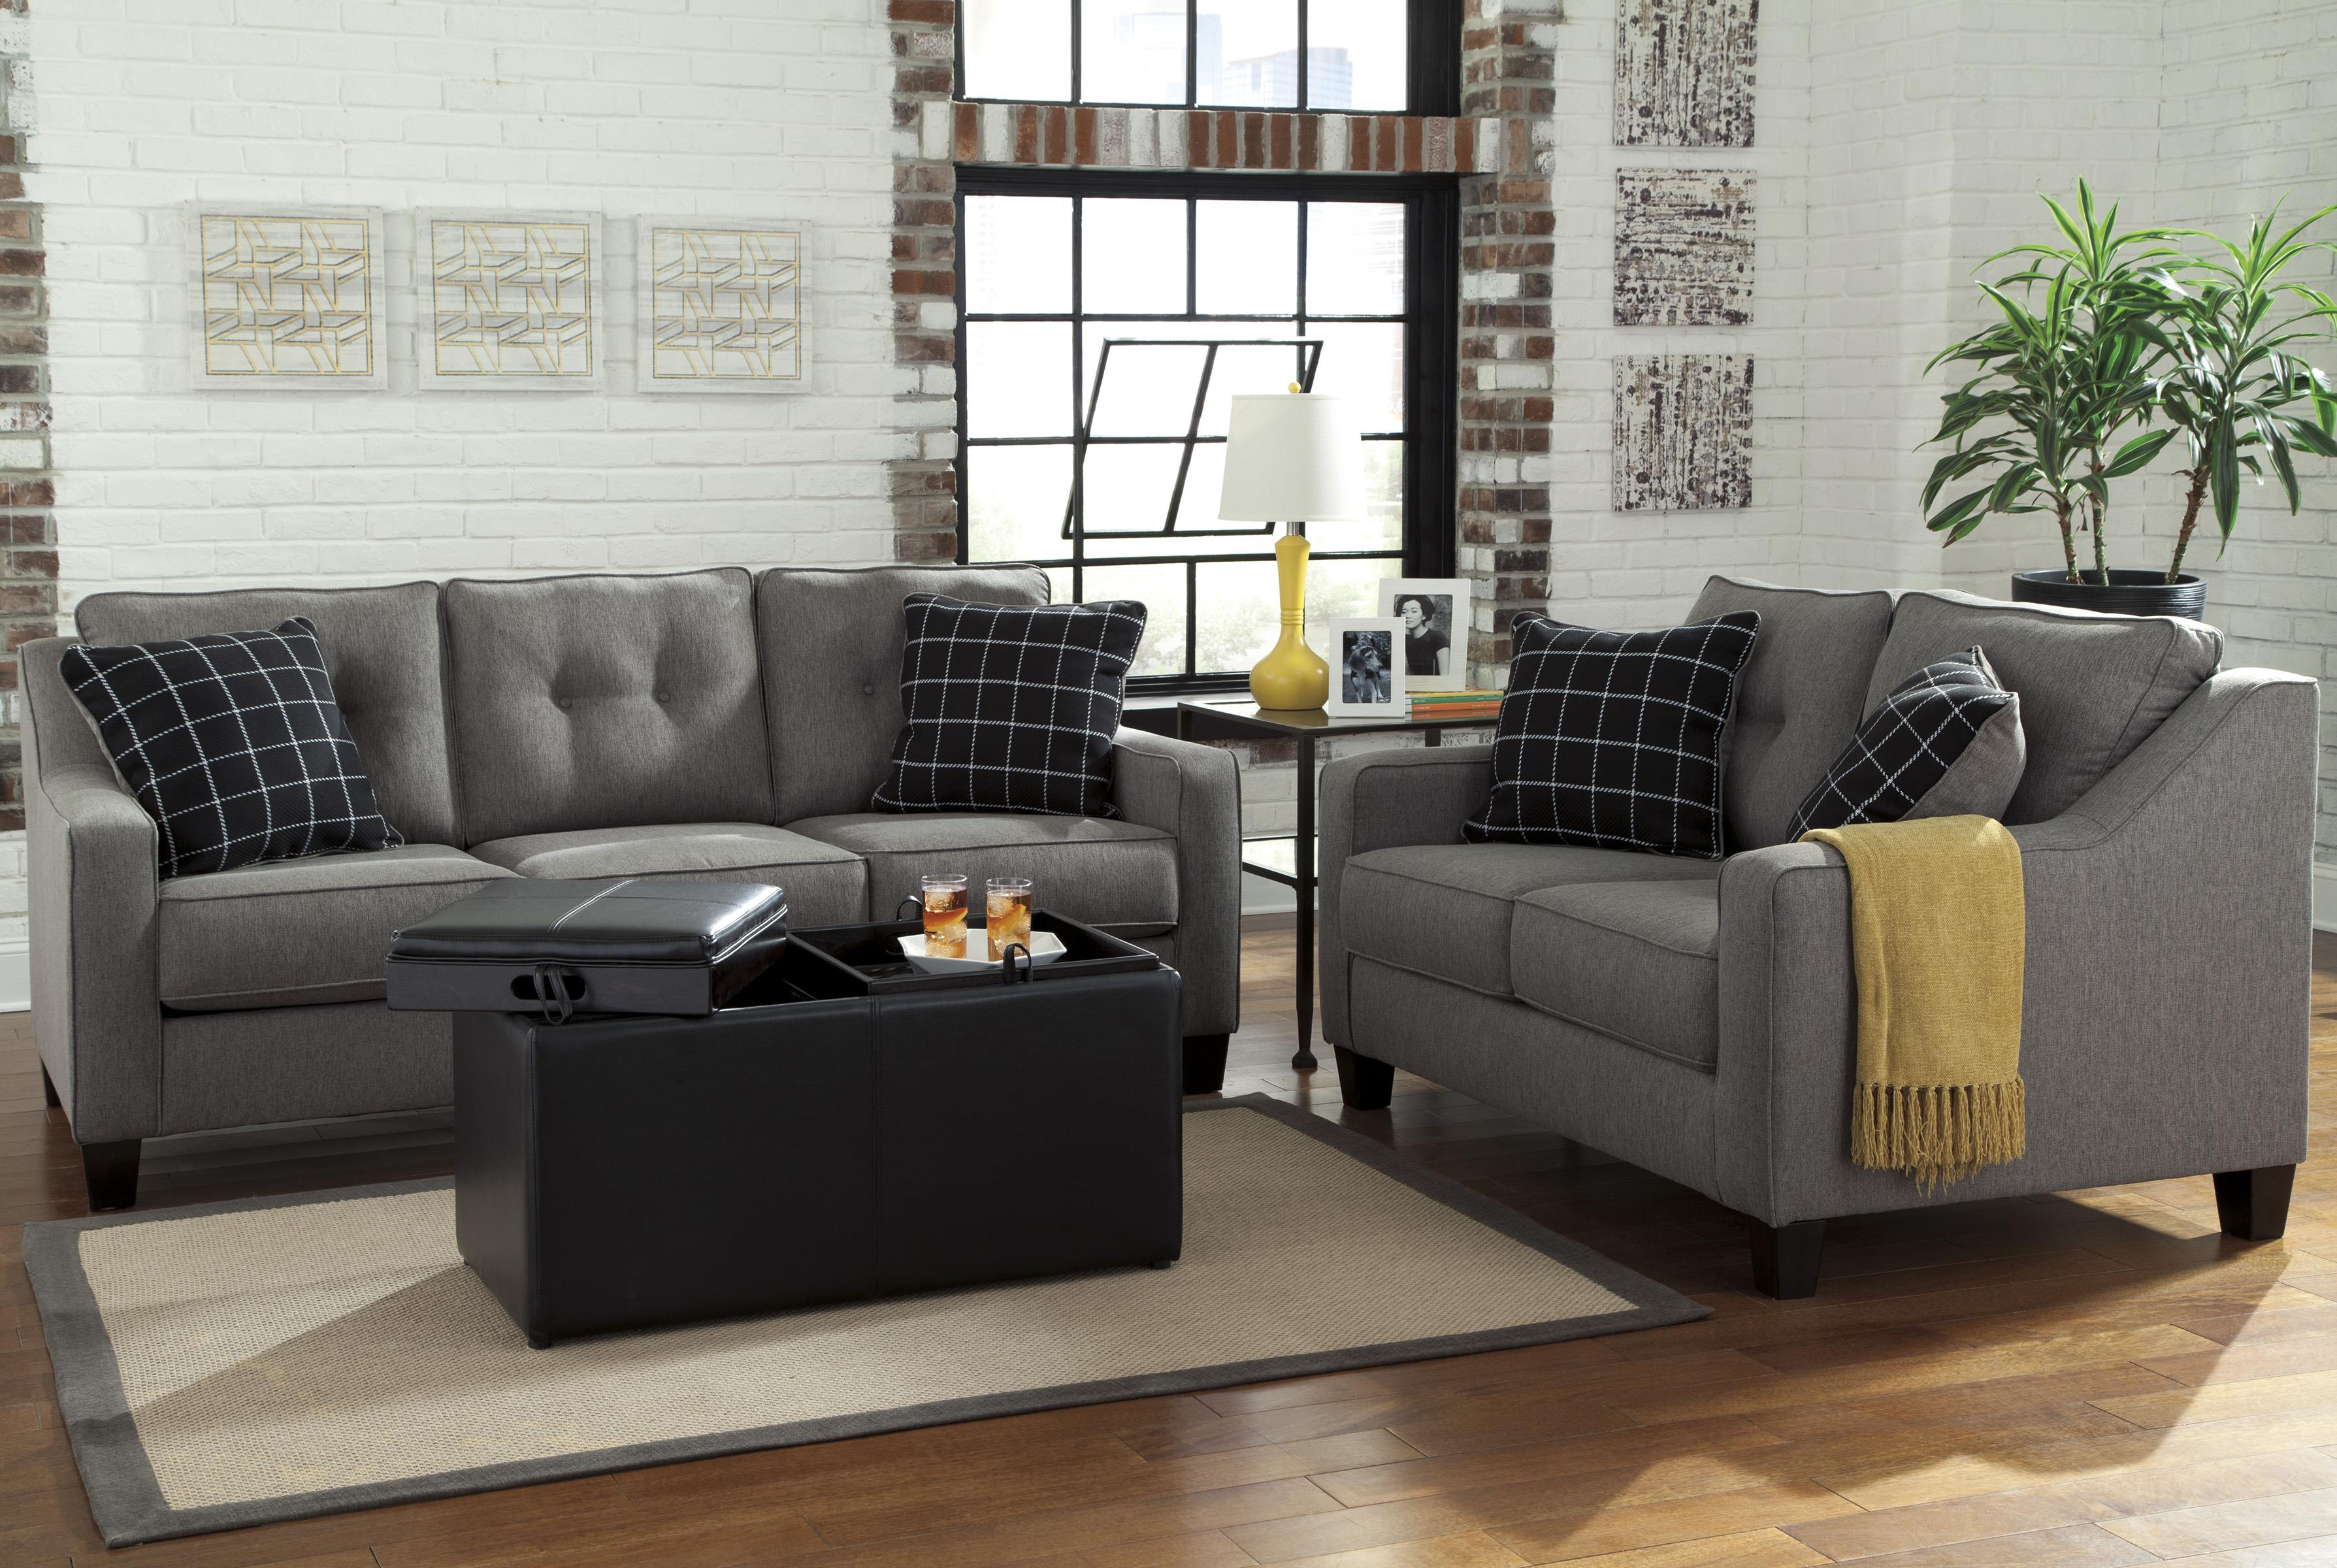 Marlo Furniture Warehouse Forestville Md Trend Home Design And Decor